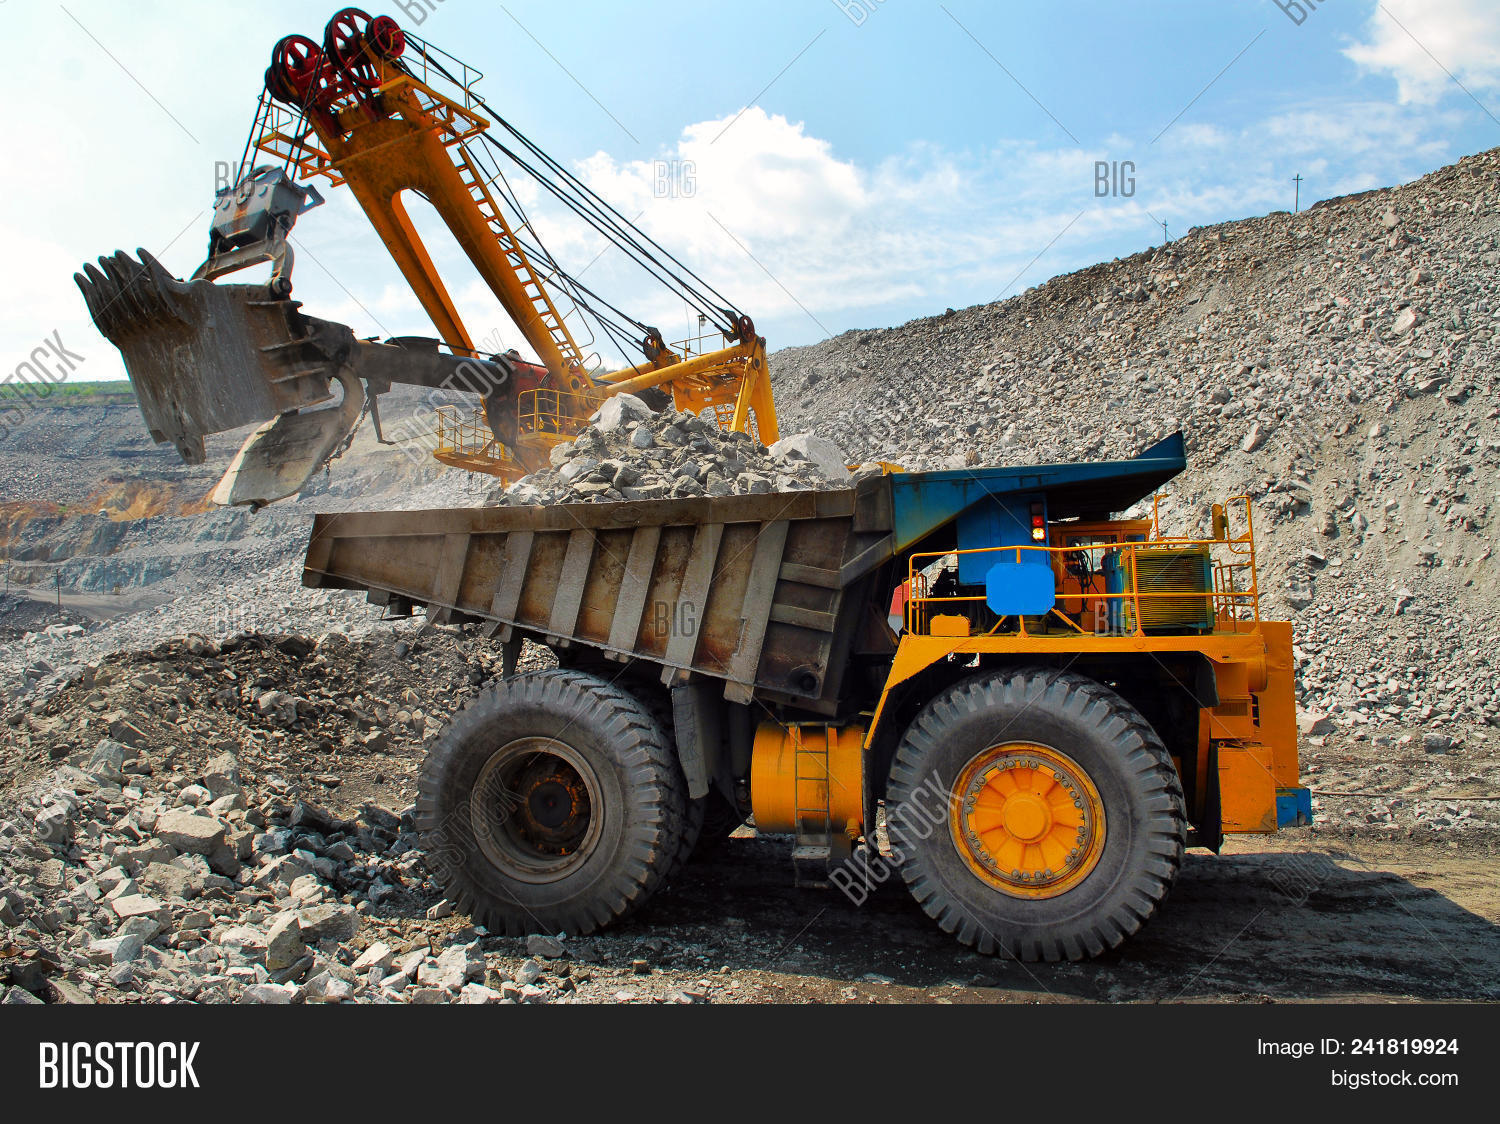 big,car,career,coal,coalmining,construct,construction,dig,dirty,driving,dump,dumper,dumptruck,energy,environment,equipment,excavation,excavator,ground,heavy,huge,industrial,industry,large,loader,machine,machinery,mine,miner,mining,mover,opencast,ore,oversized,power,production,quarry,rock,stone,tractor,transport,transportation,truck,vehicle,wheel,work,yellow